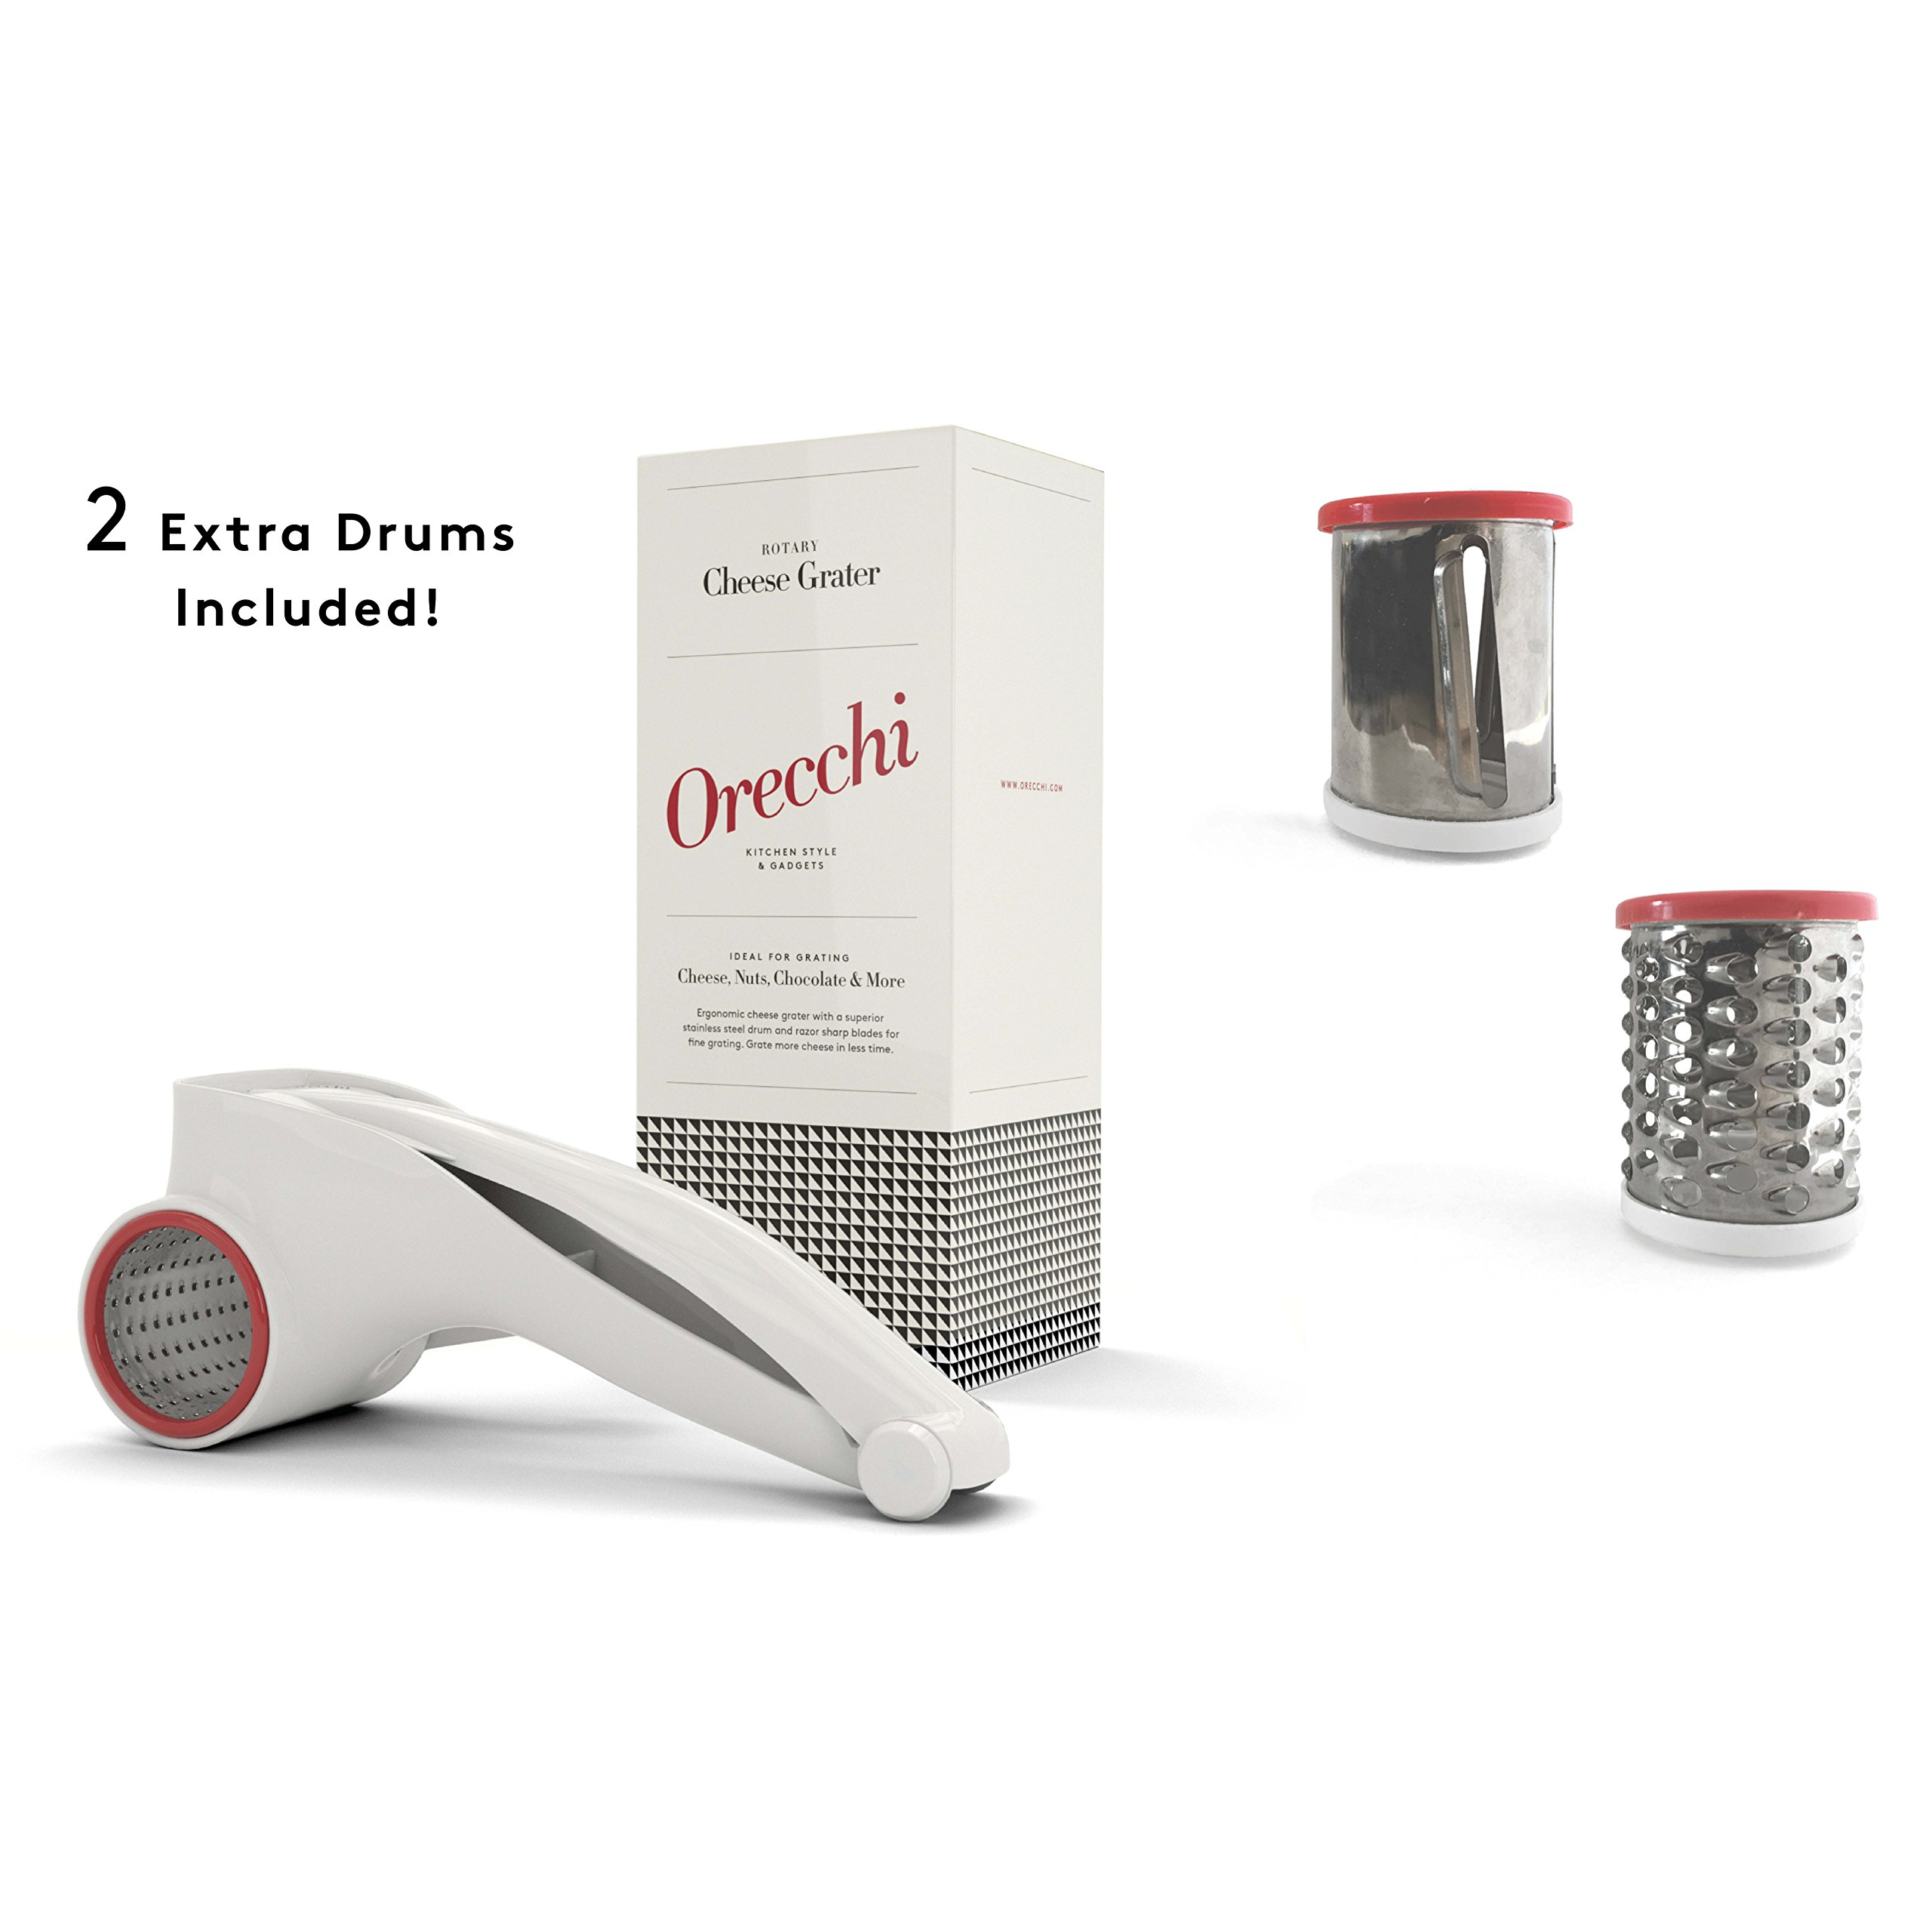 Orecchi Rotary Cheese Grater with Three Interchangeable Drums - Vegetable Cutter Slicer and Shredder